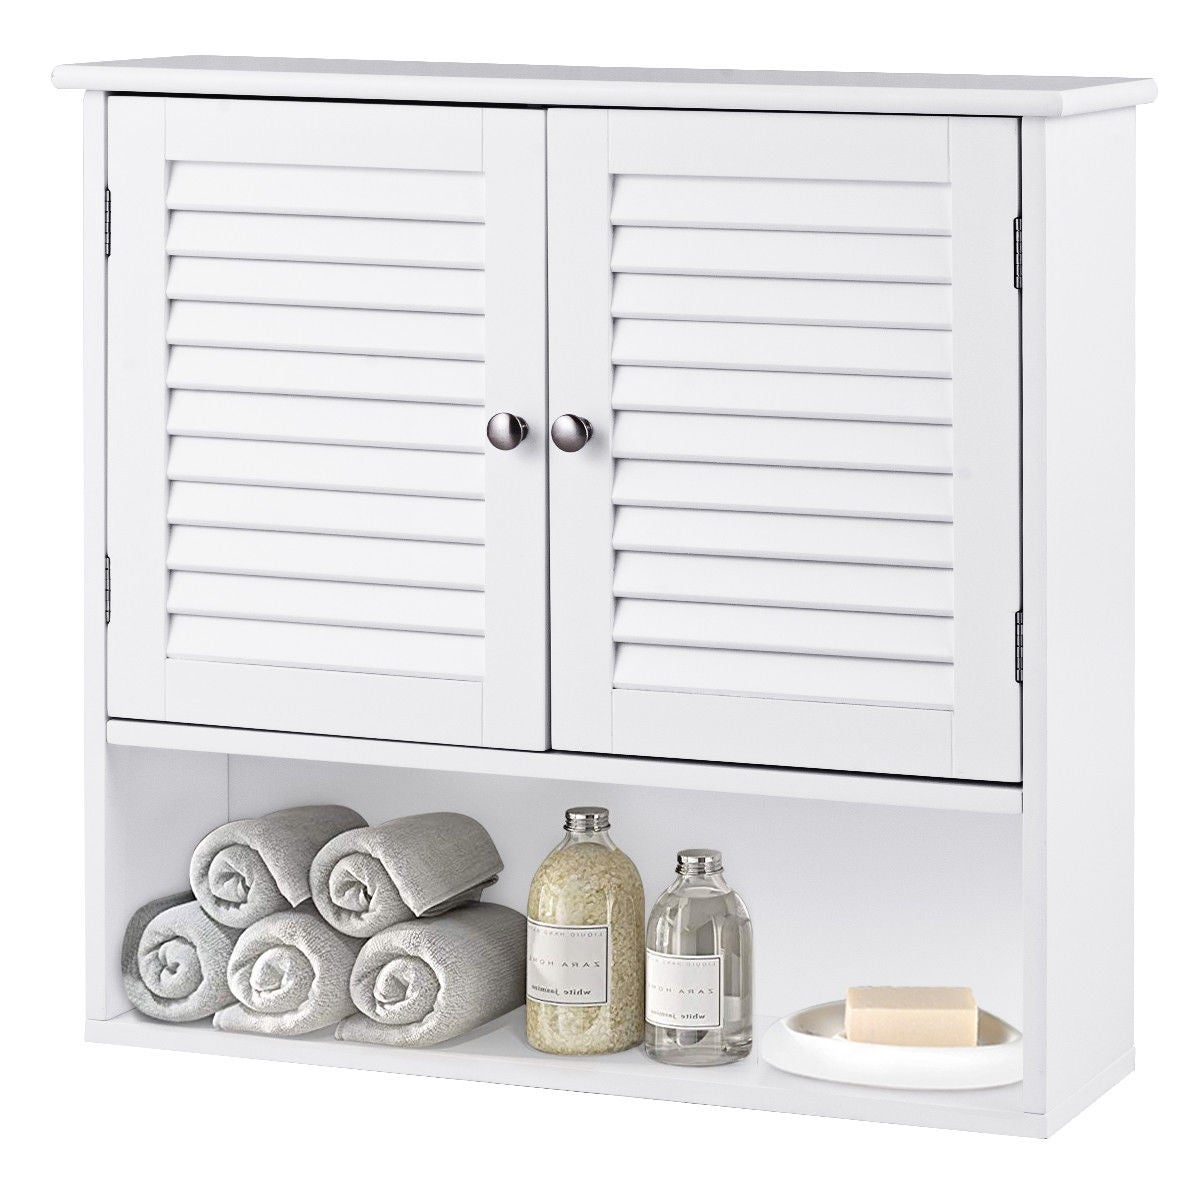 Shelves Bathroom Wall Storage Cabinet